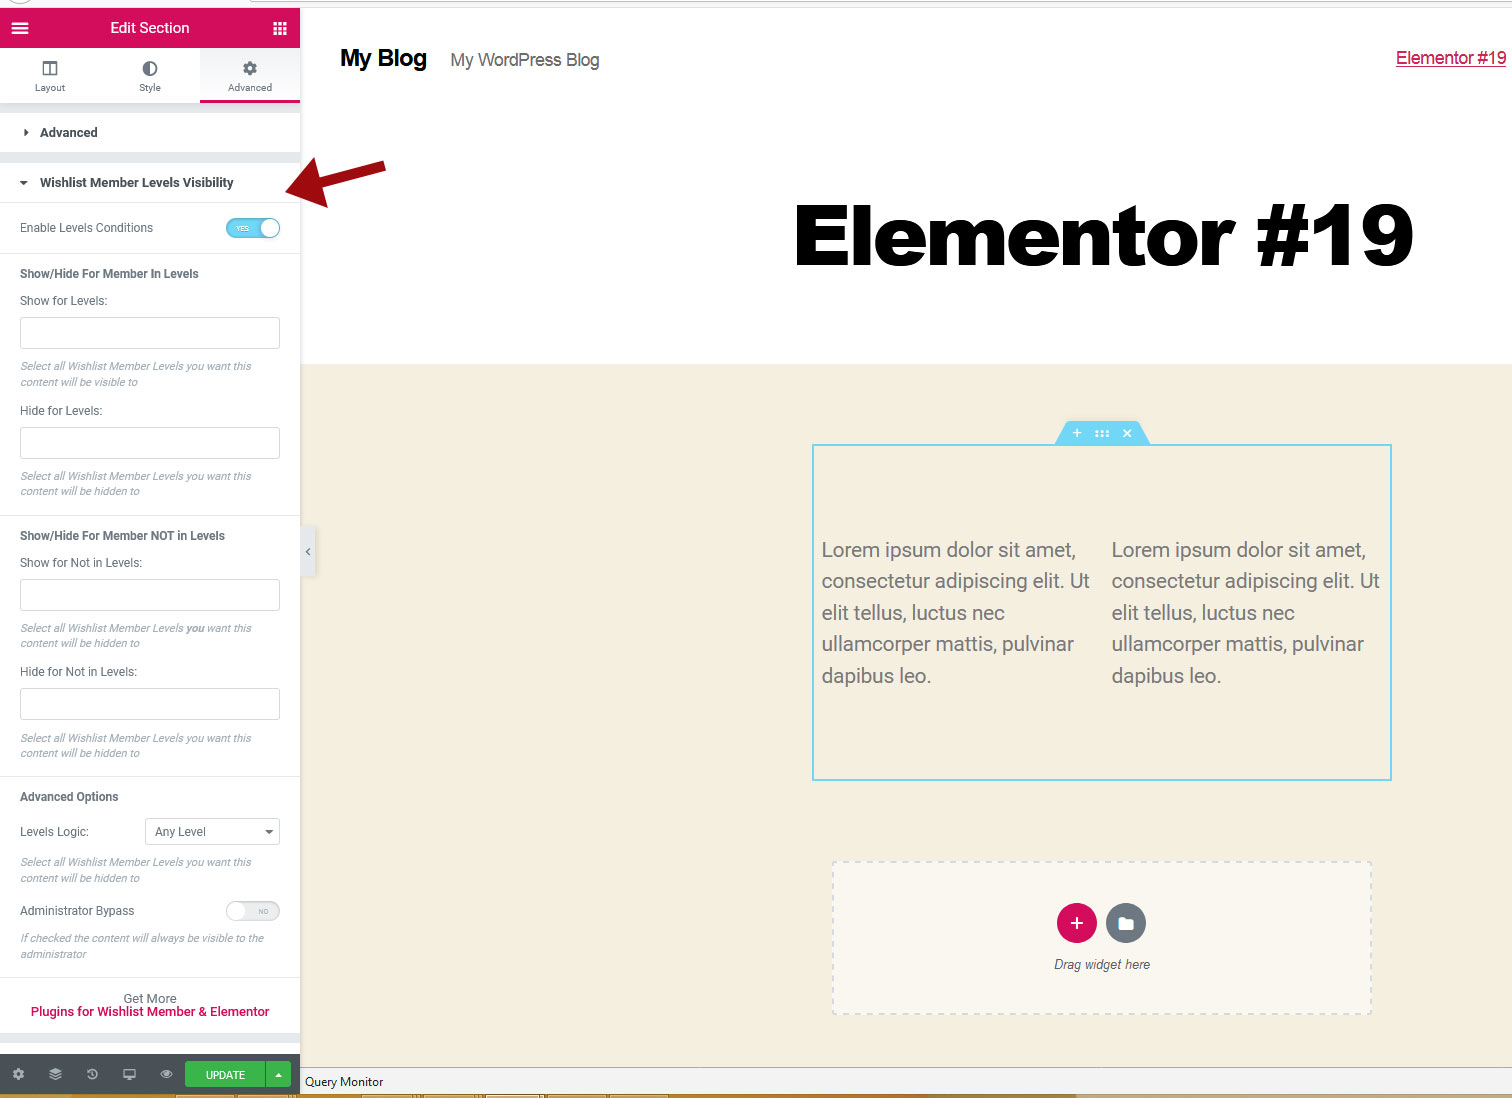 Dynamic Visibility for Wishlist Member & Elementor